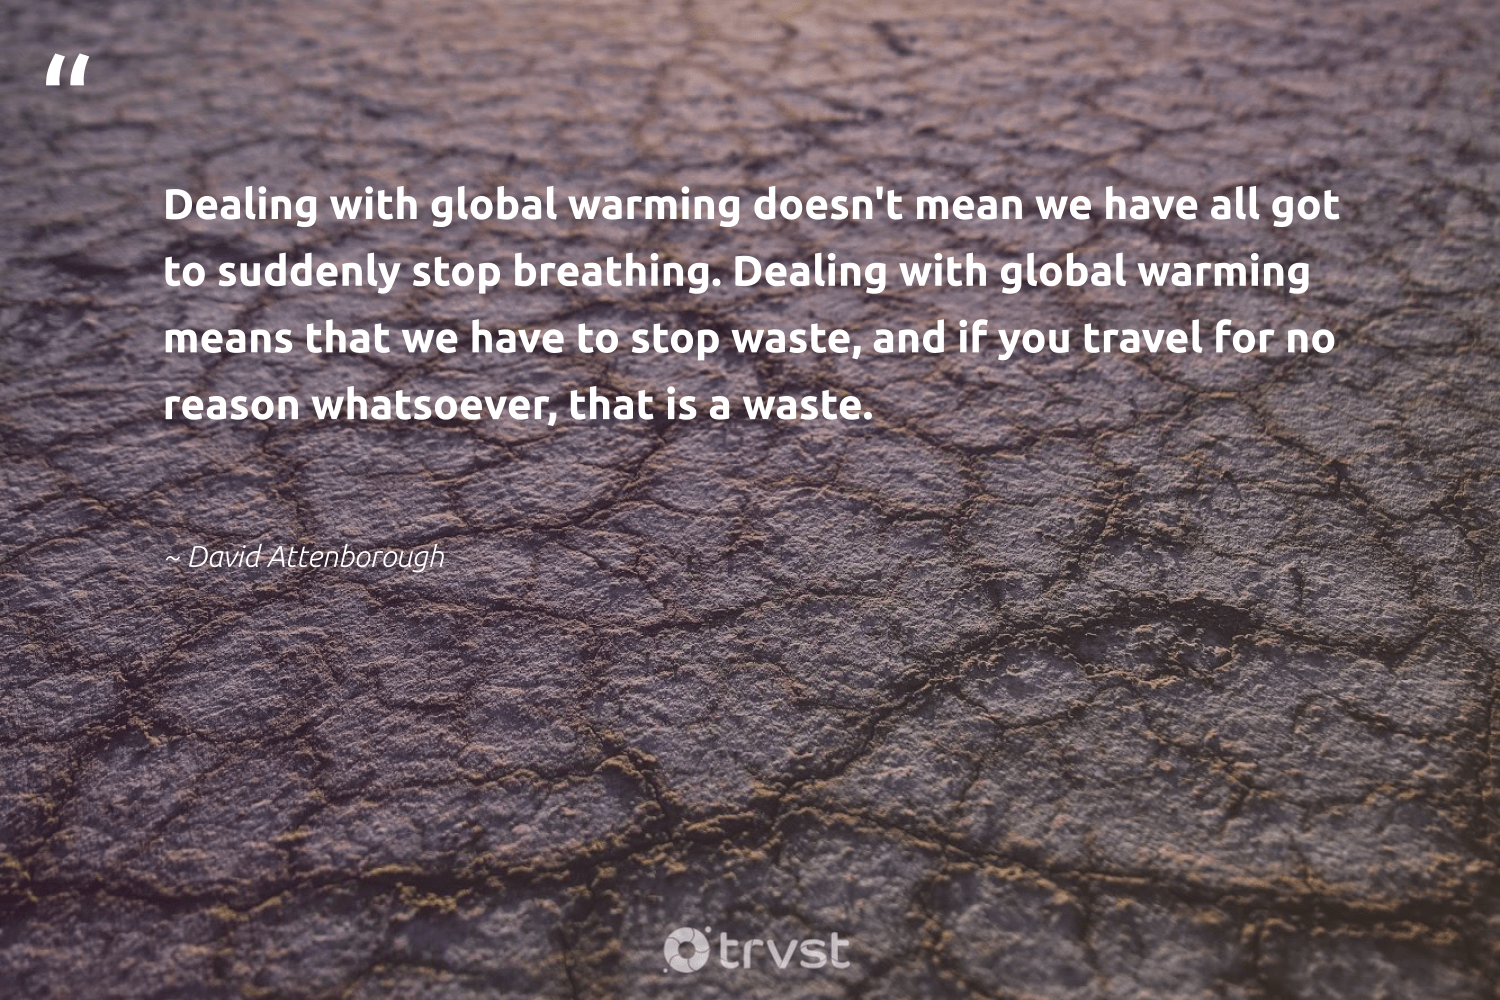 """""""Dealing with global warming doesn't mean we have all got to suddenly stop breathing. Dealing with global warming means that we have to stop waste, and if you travel for no reason whatsoever, that is a waste.""""  - David Attenborough #trvst #quotes #waste #globalwarming #travel #scuba #ecoconscious #sanctuary #dosomething #scubadiving #climatechangeisreal #science"""